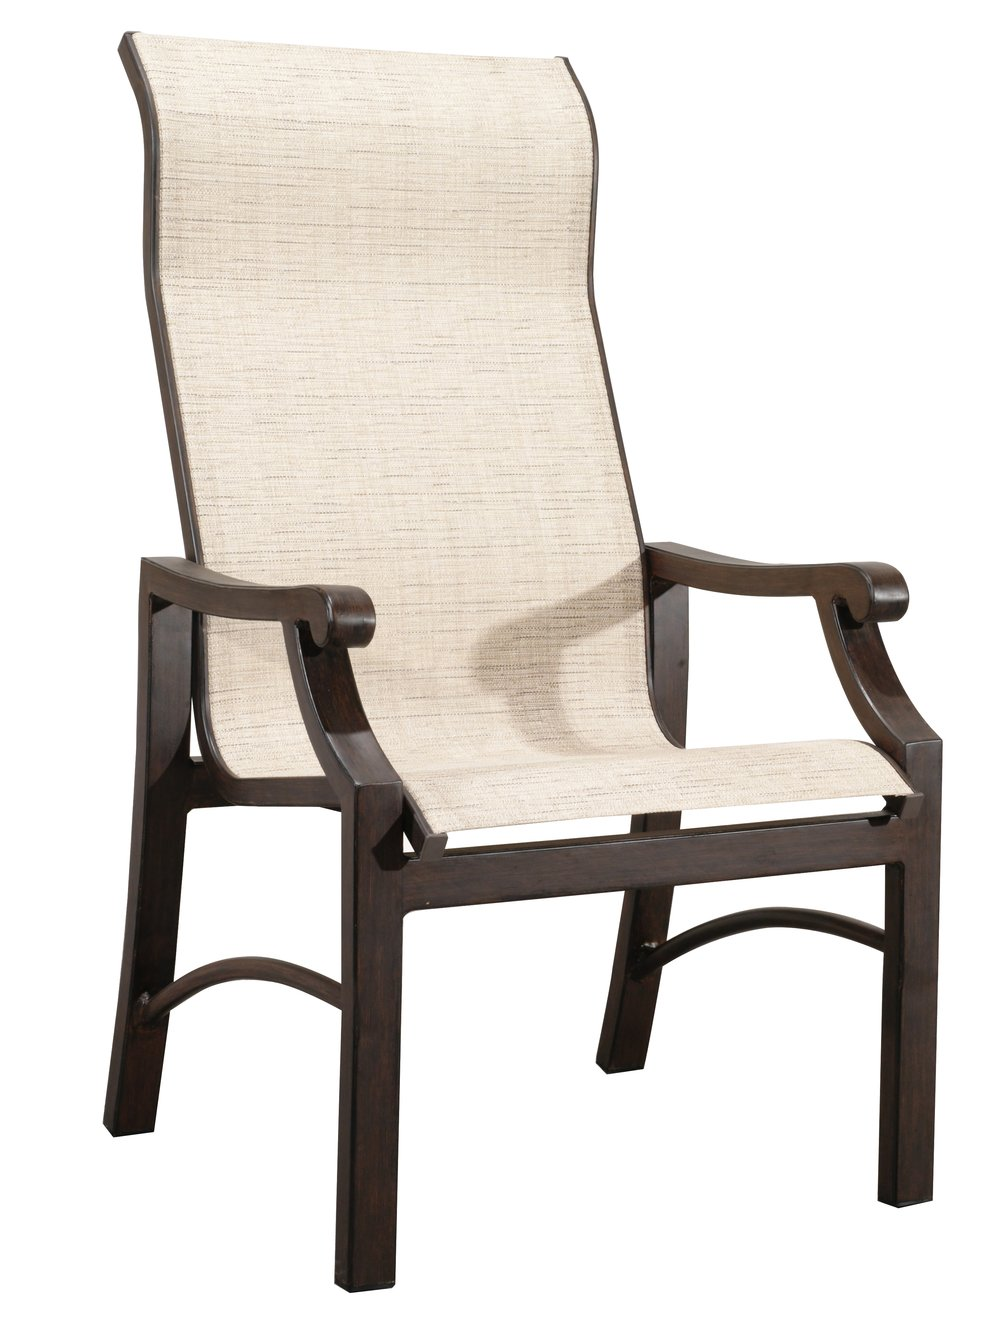 "970820 Venice Sling Dining Chair   27.4"" x 20"" x 42"""